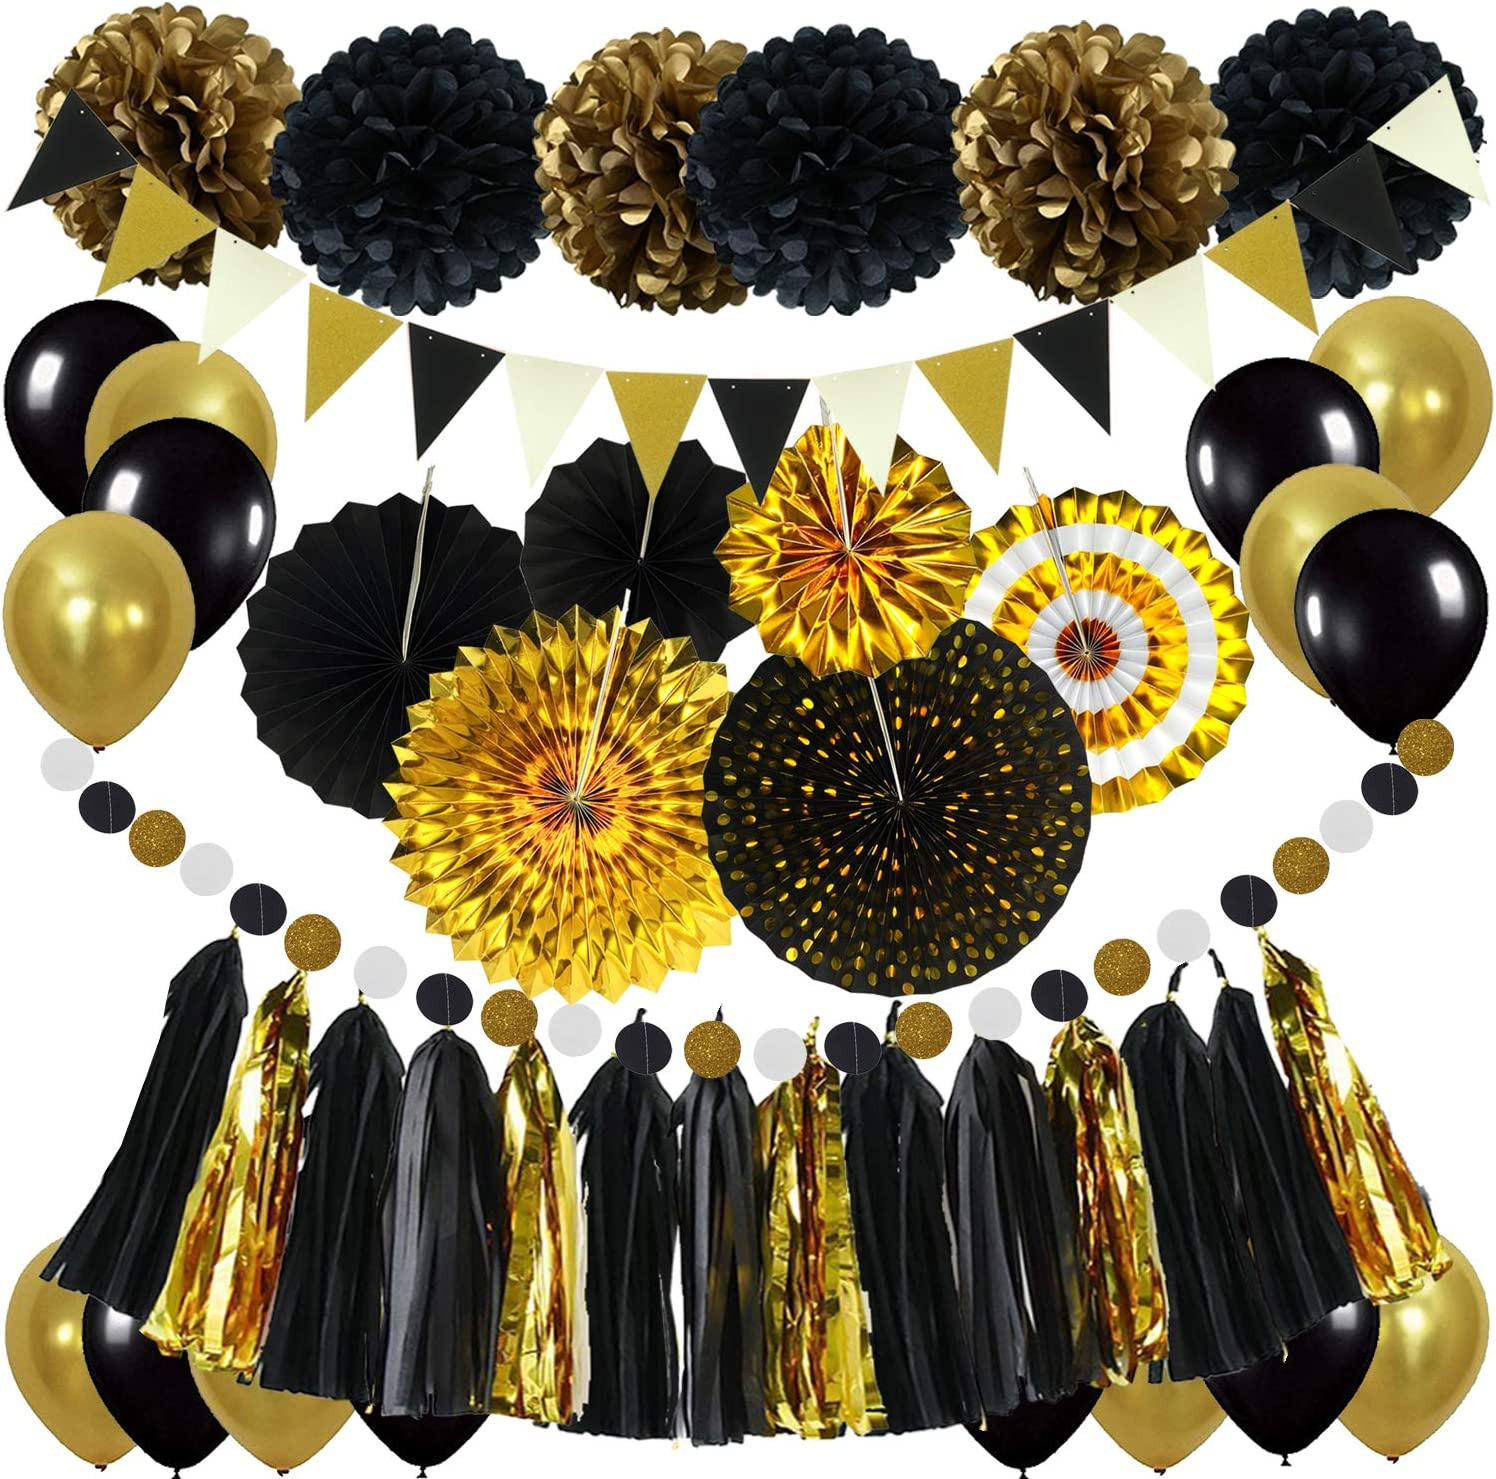 ZERODECO Black and Gold Decorations, Hanging Paper Fans Pom Poms Flowers Tassel Garlands String Triangle Bunting Flags and Balloons for Birthday Graduation Party Wedding Décor